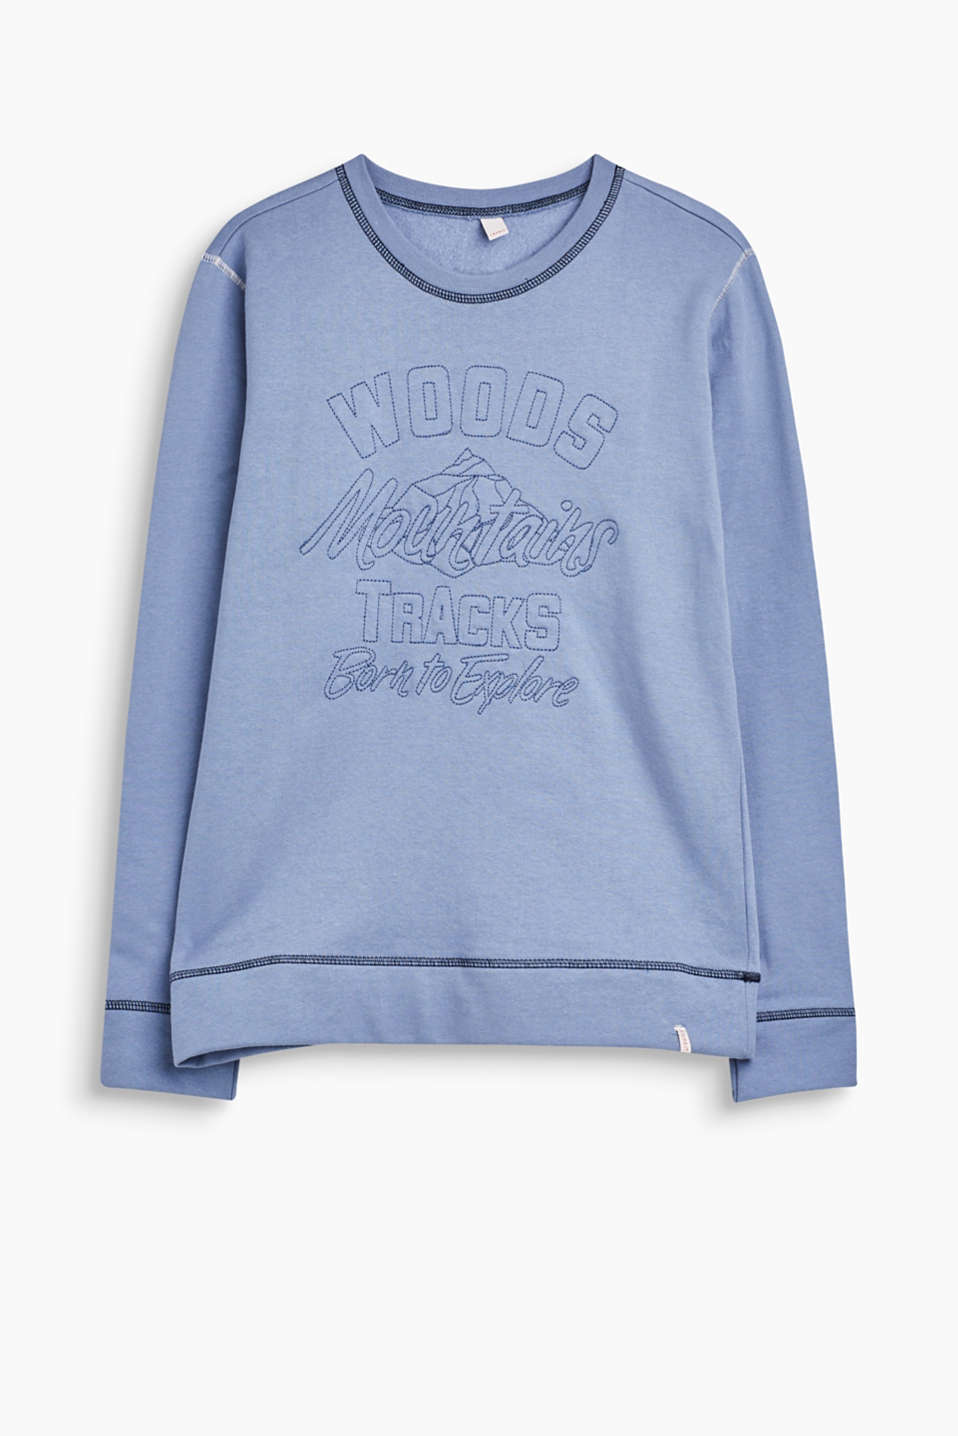 Pull it on, feel good and look cool: soft cotton sweatshirt with embroidered art work in front.